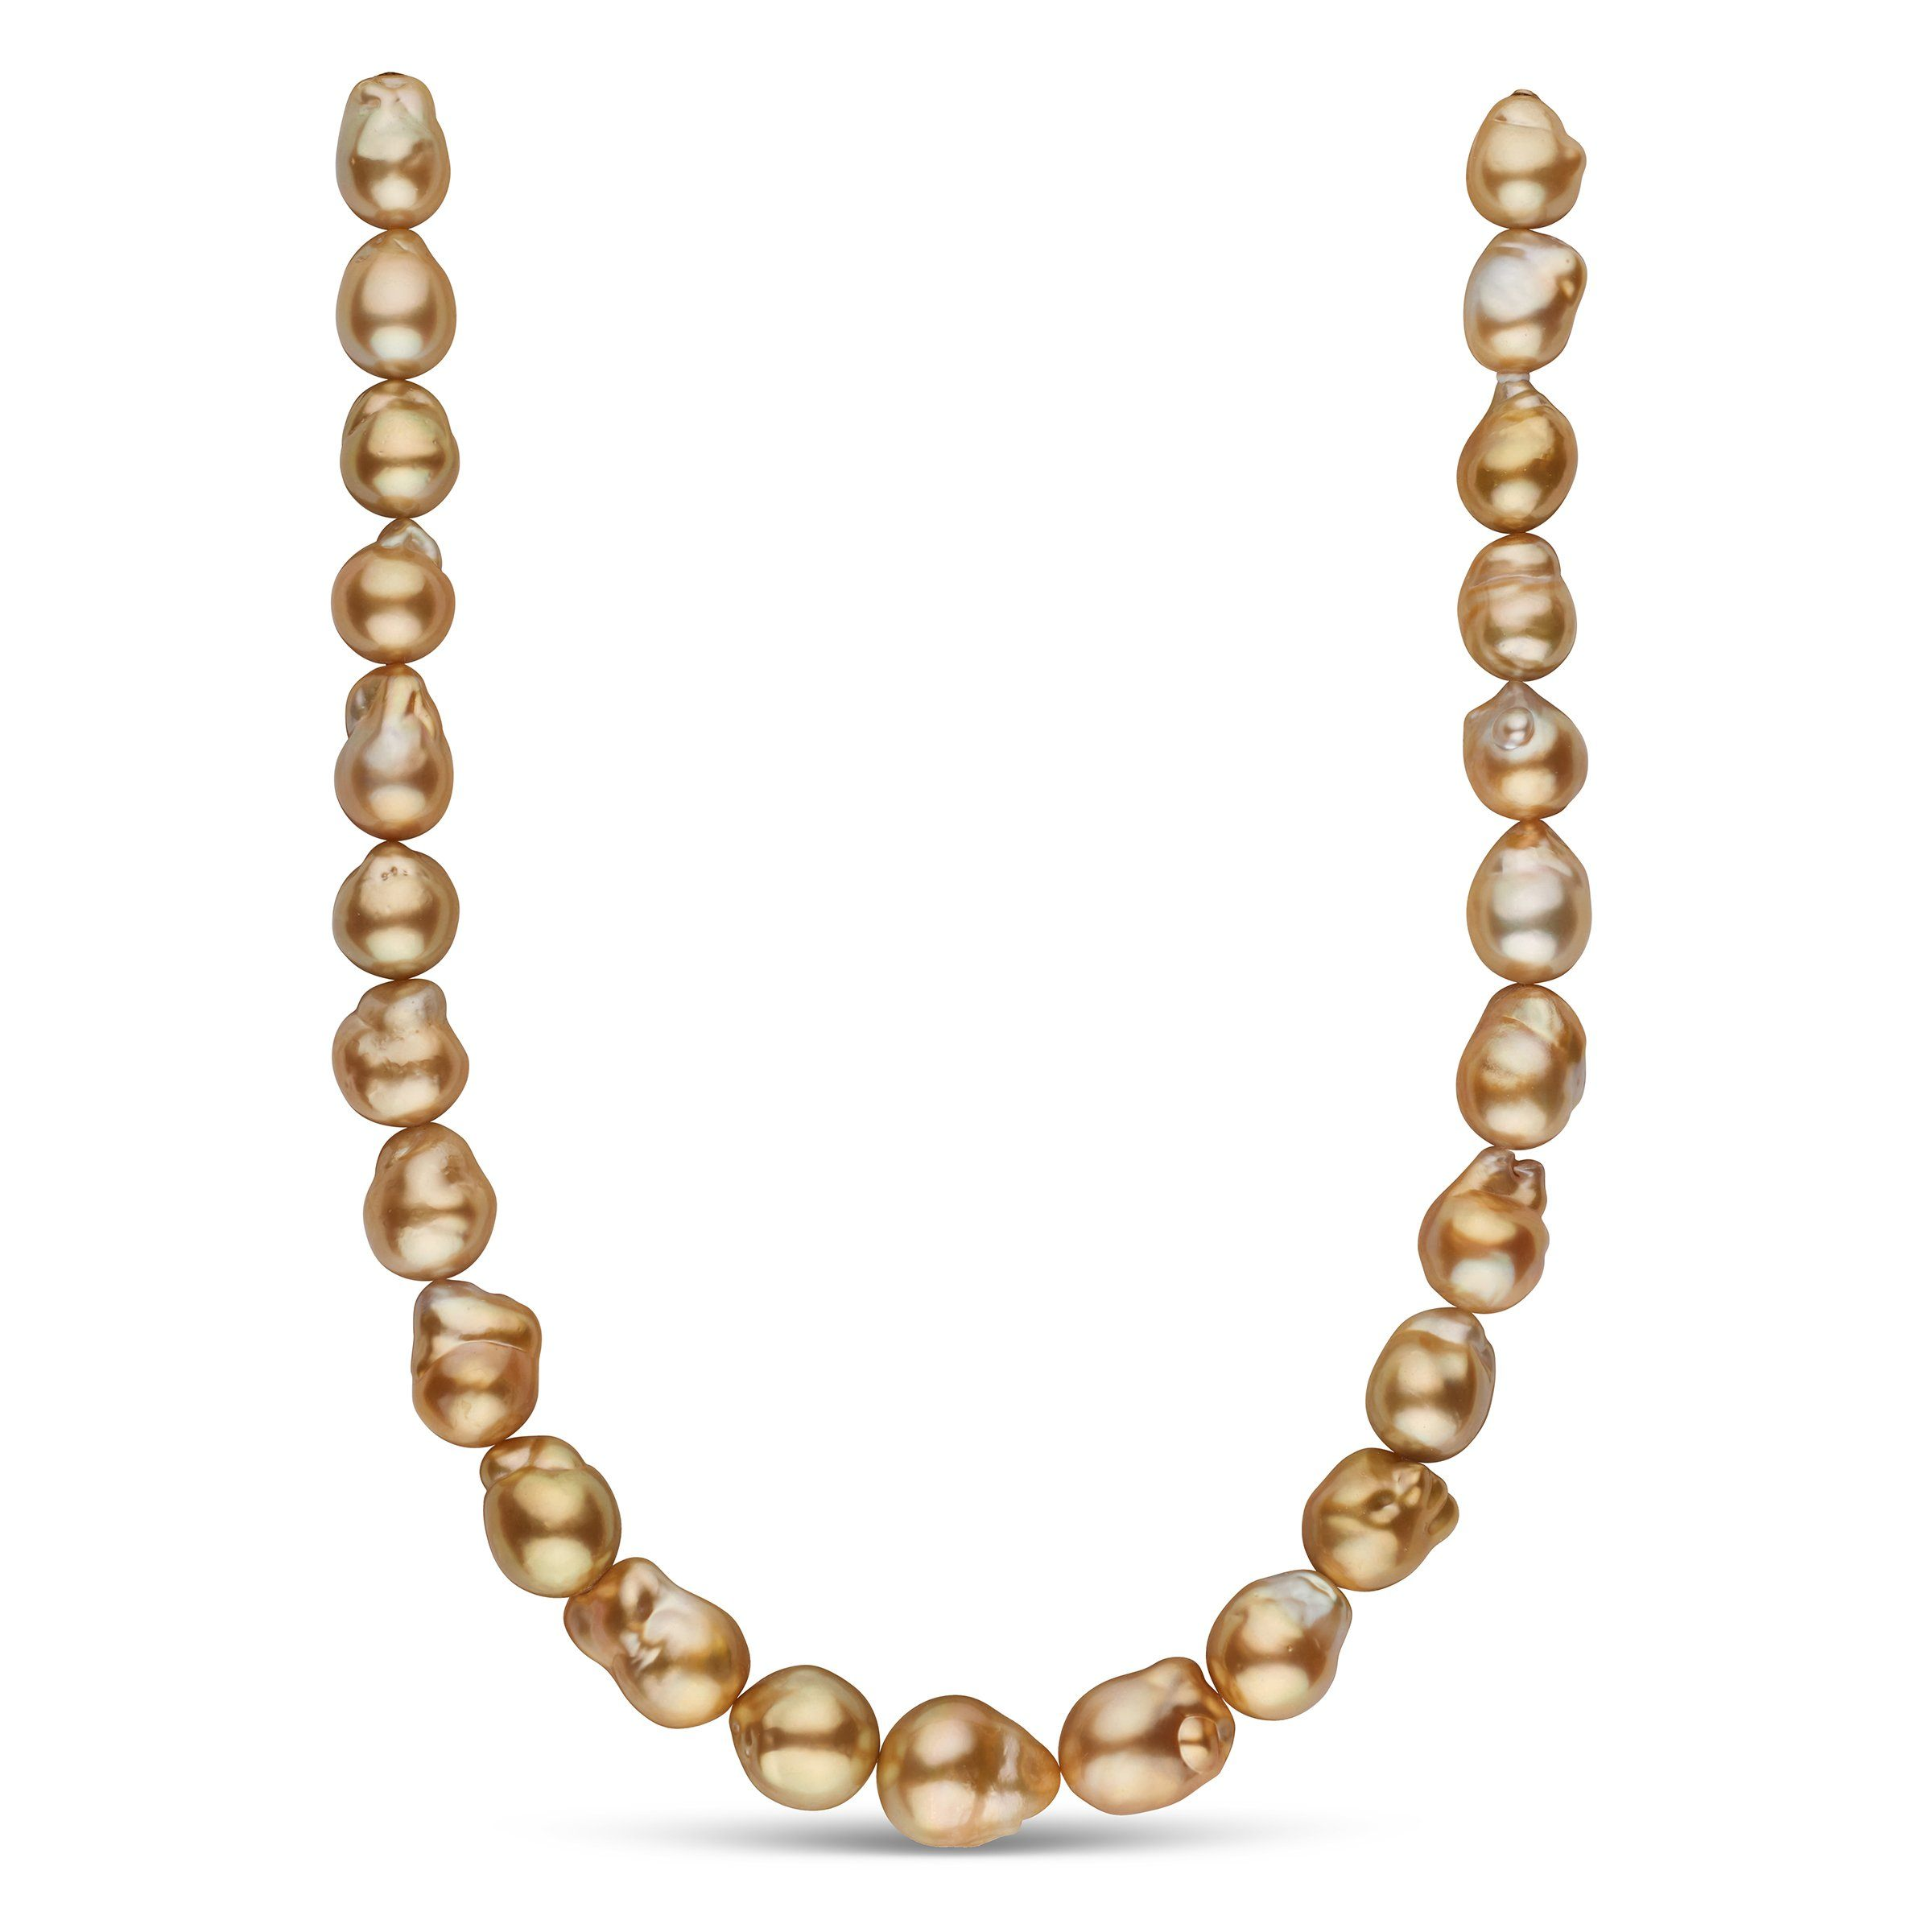 12.0-16.4 mm AA+/AAA Golden South Sea Baroque Pearl Necklace